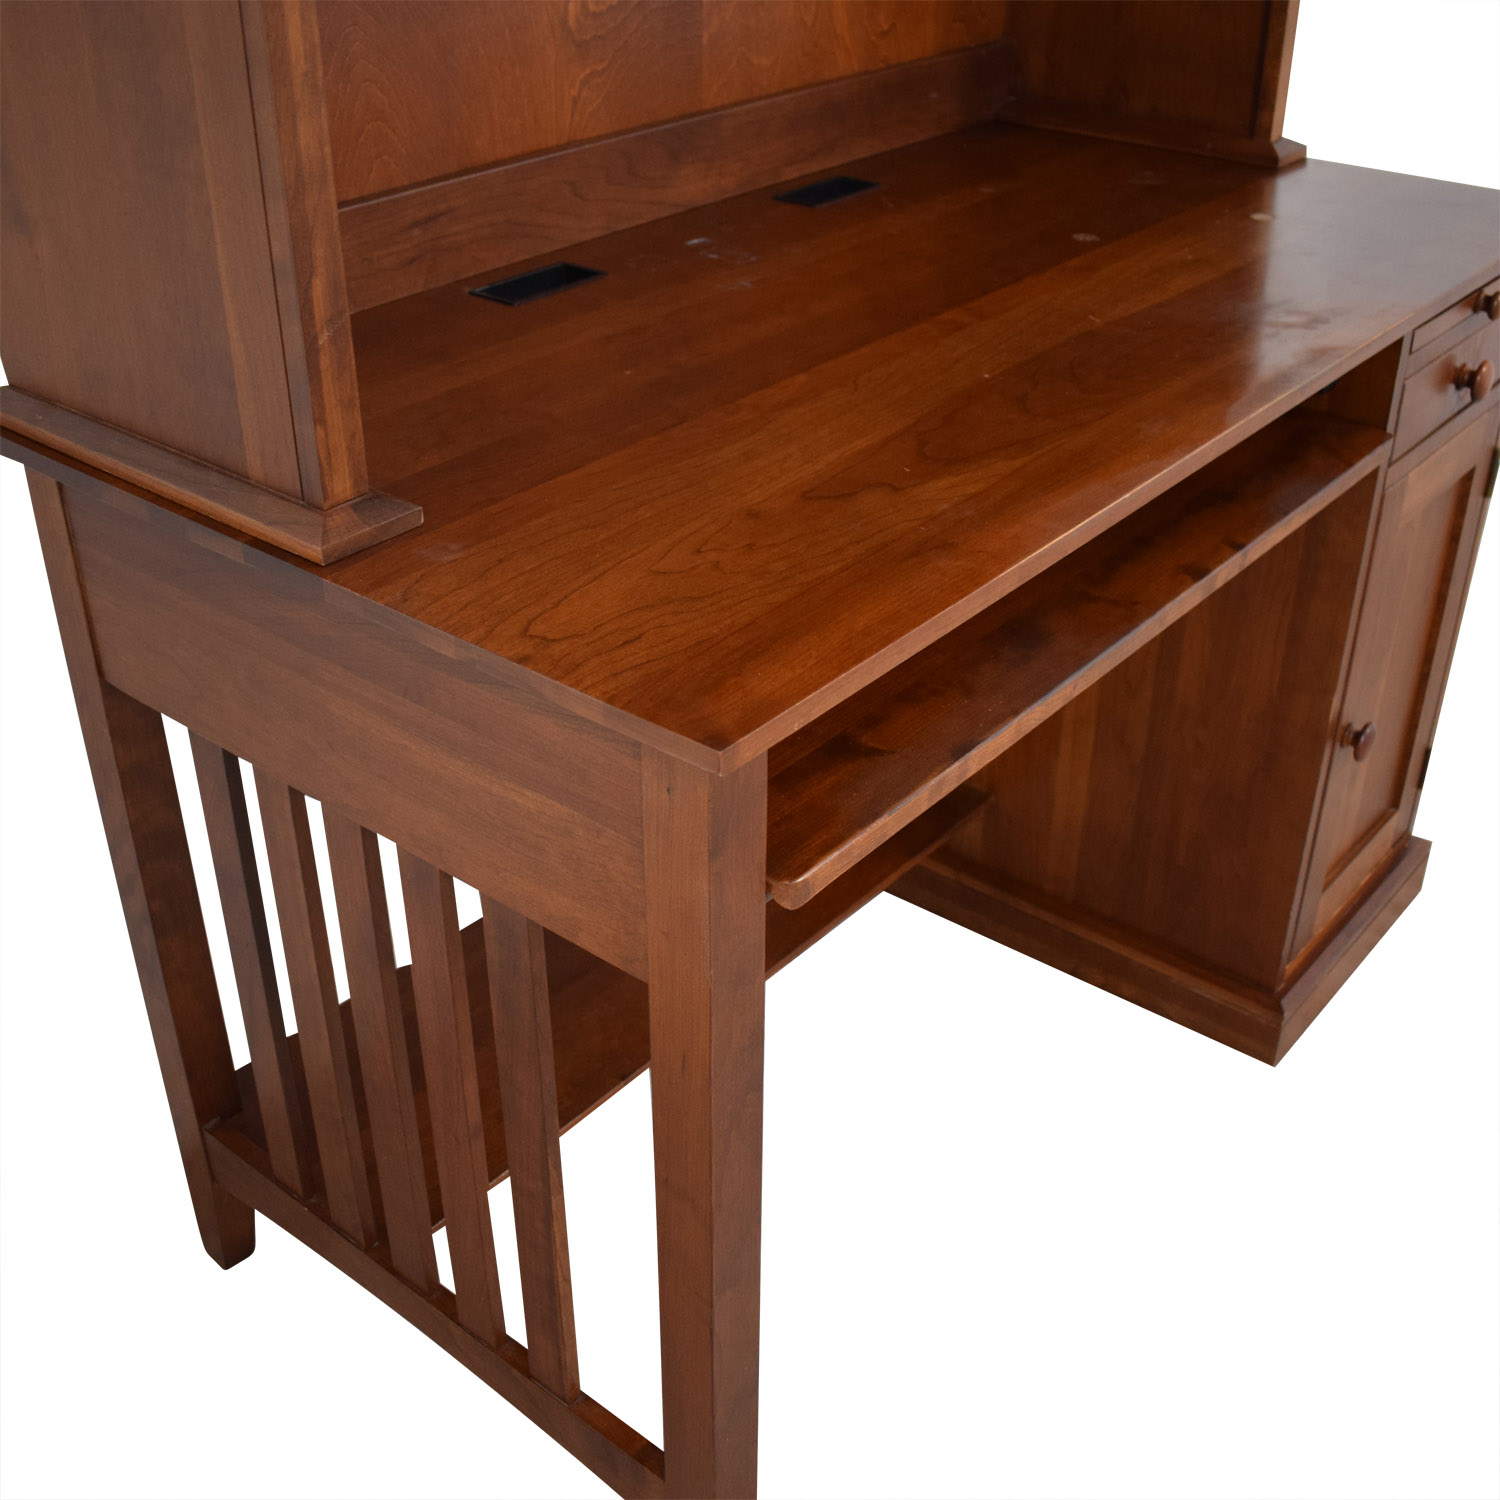 Ethan Allen Ethan Allen Computer Desk With Hutch for sale